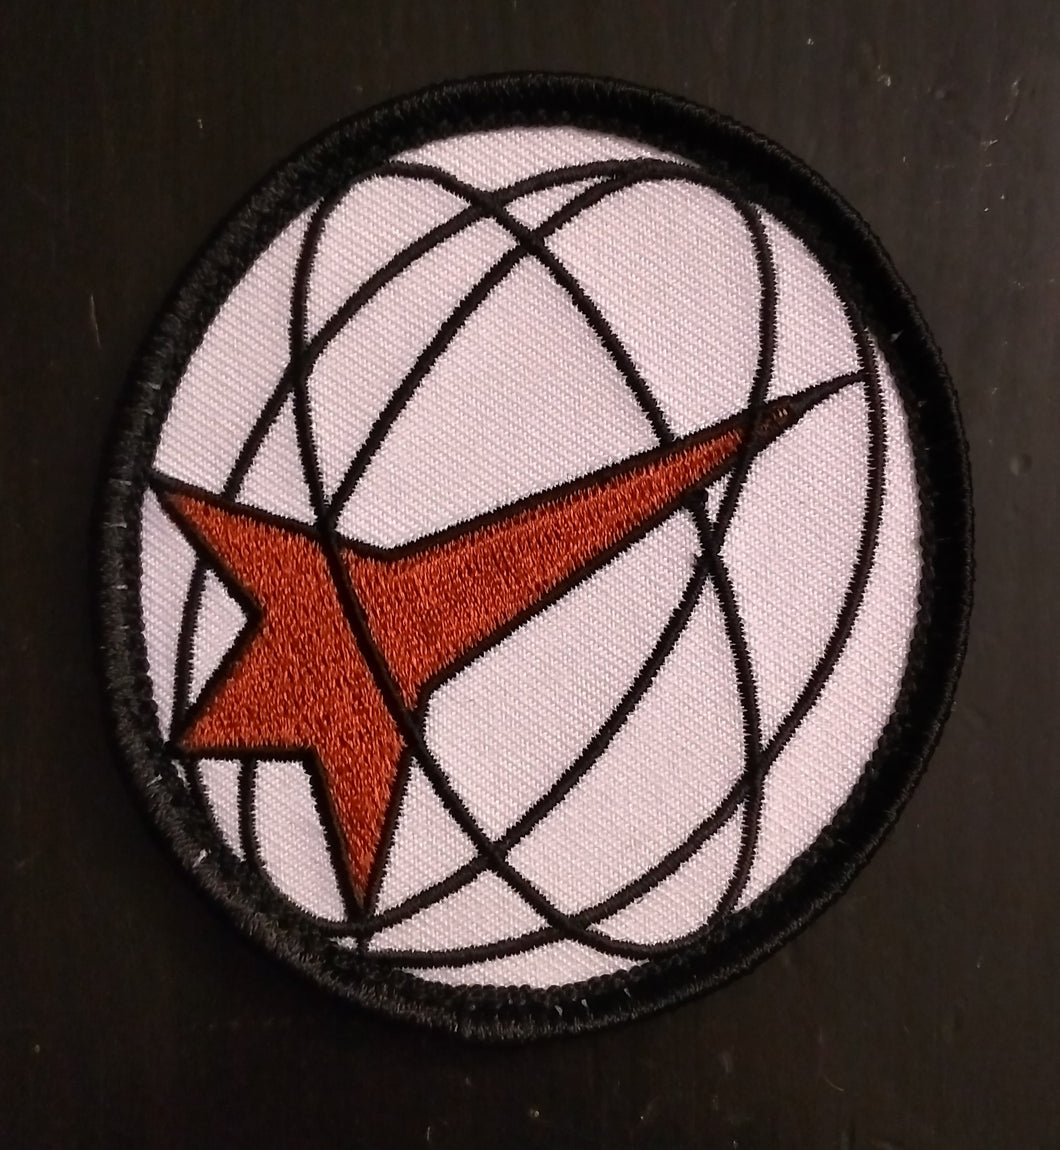 EASA Patch